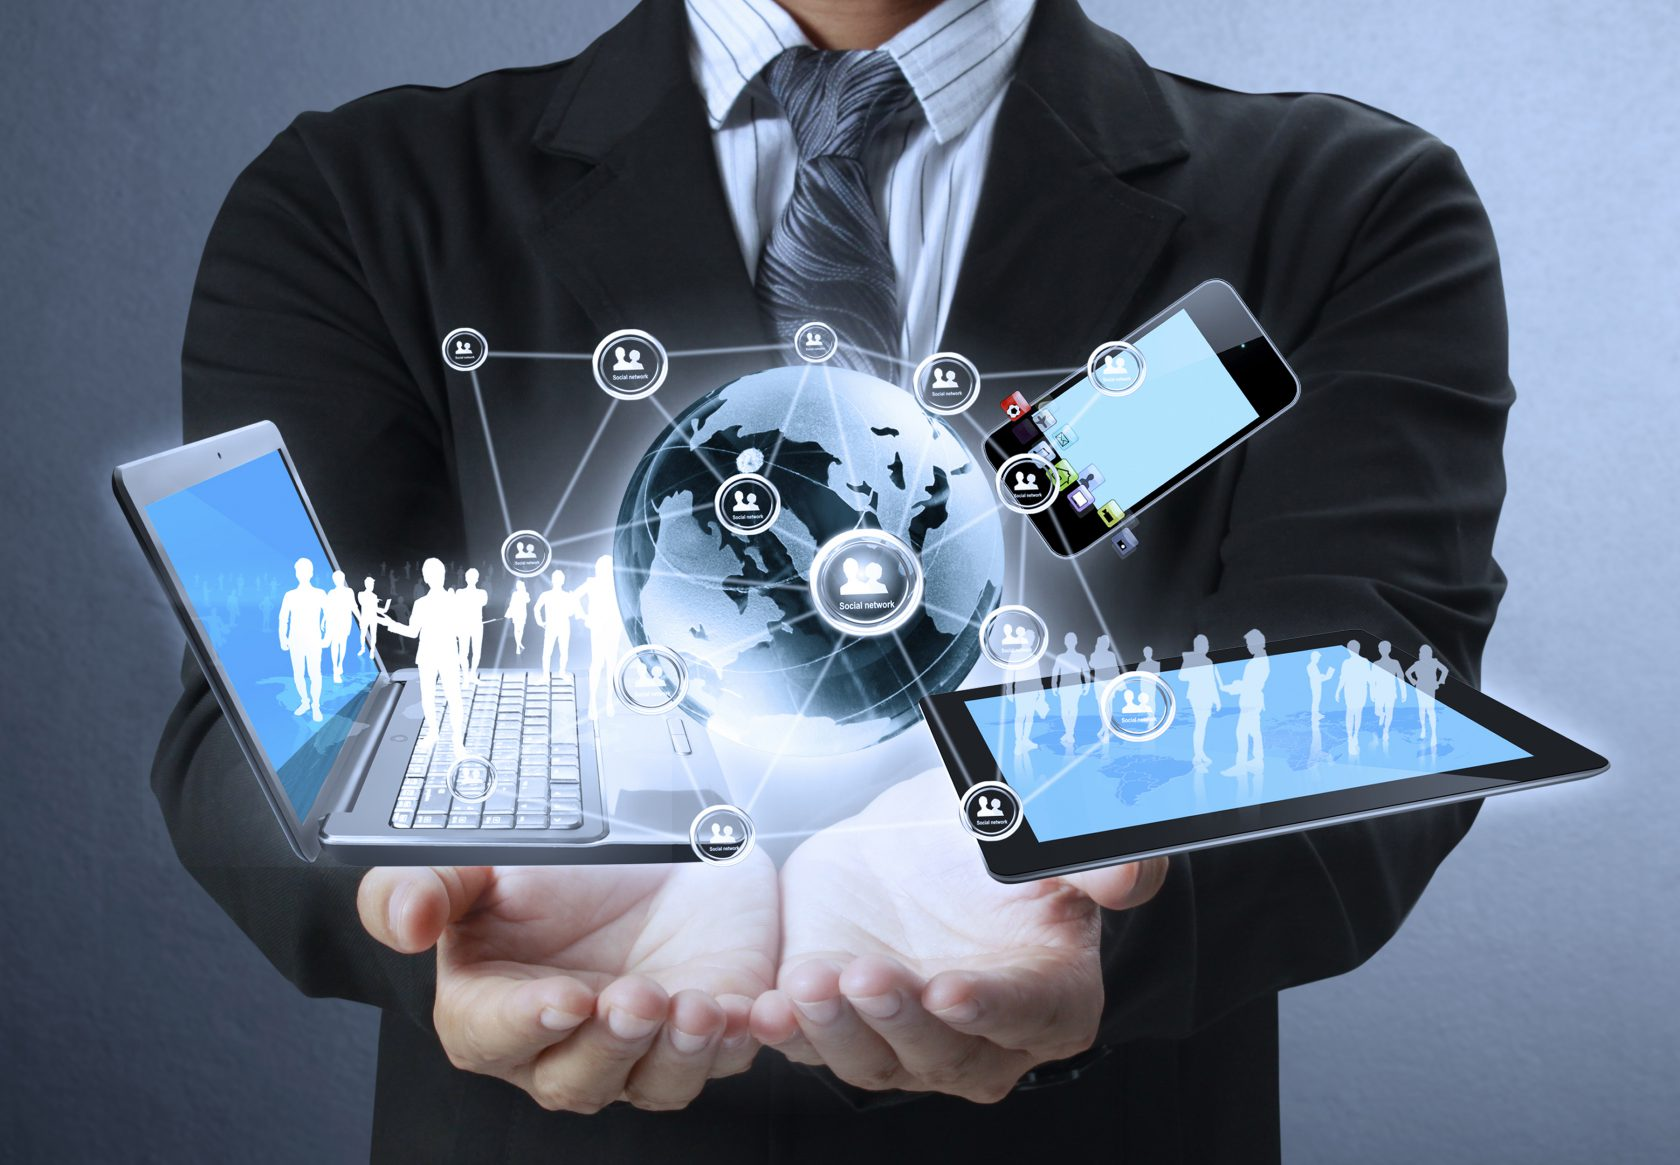 Technology in the hands of businessmen